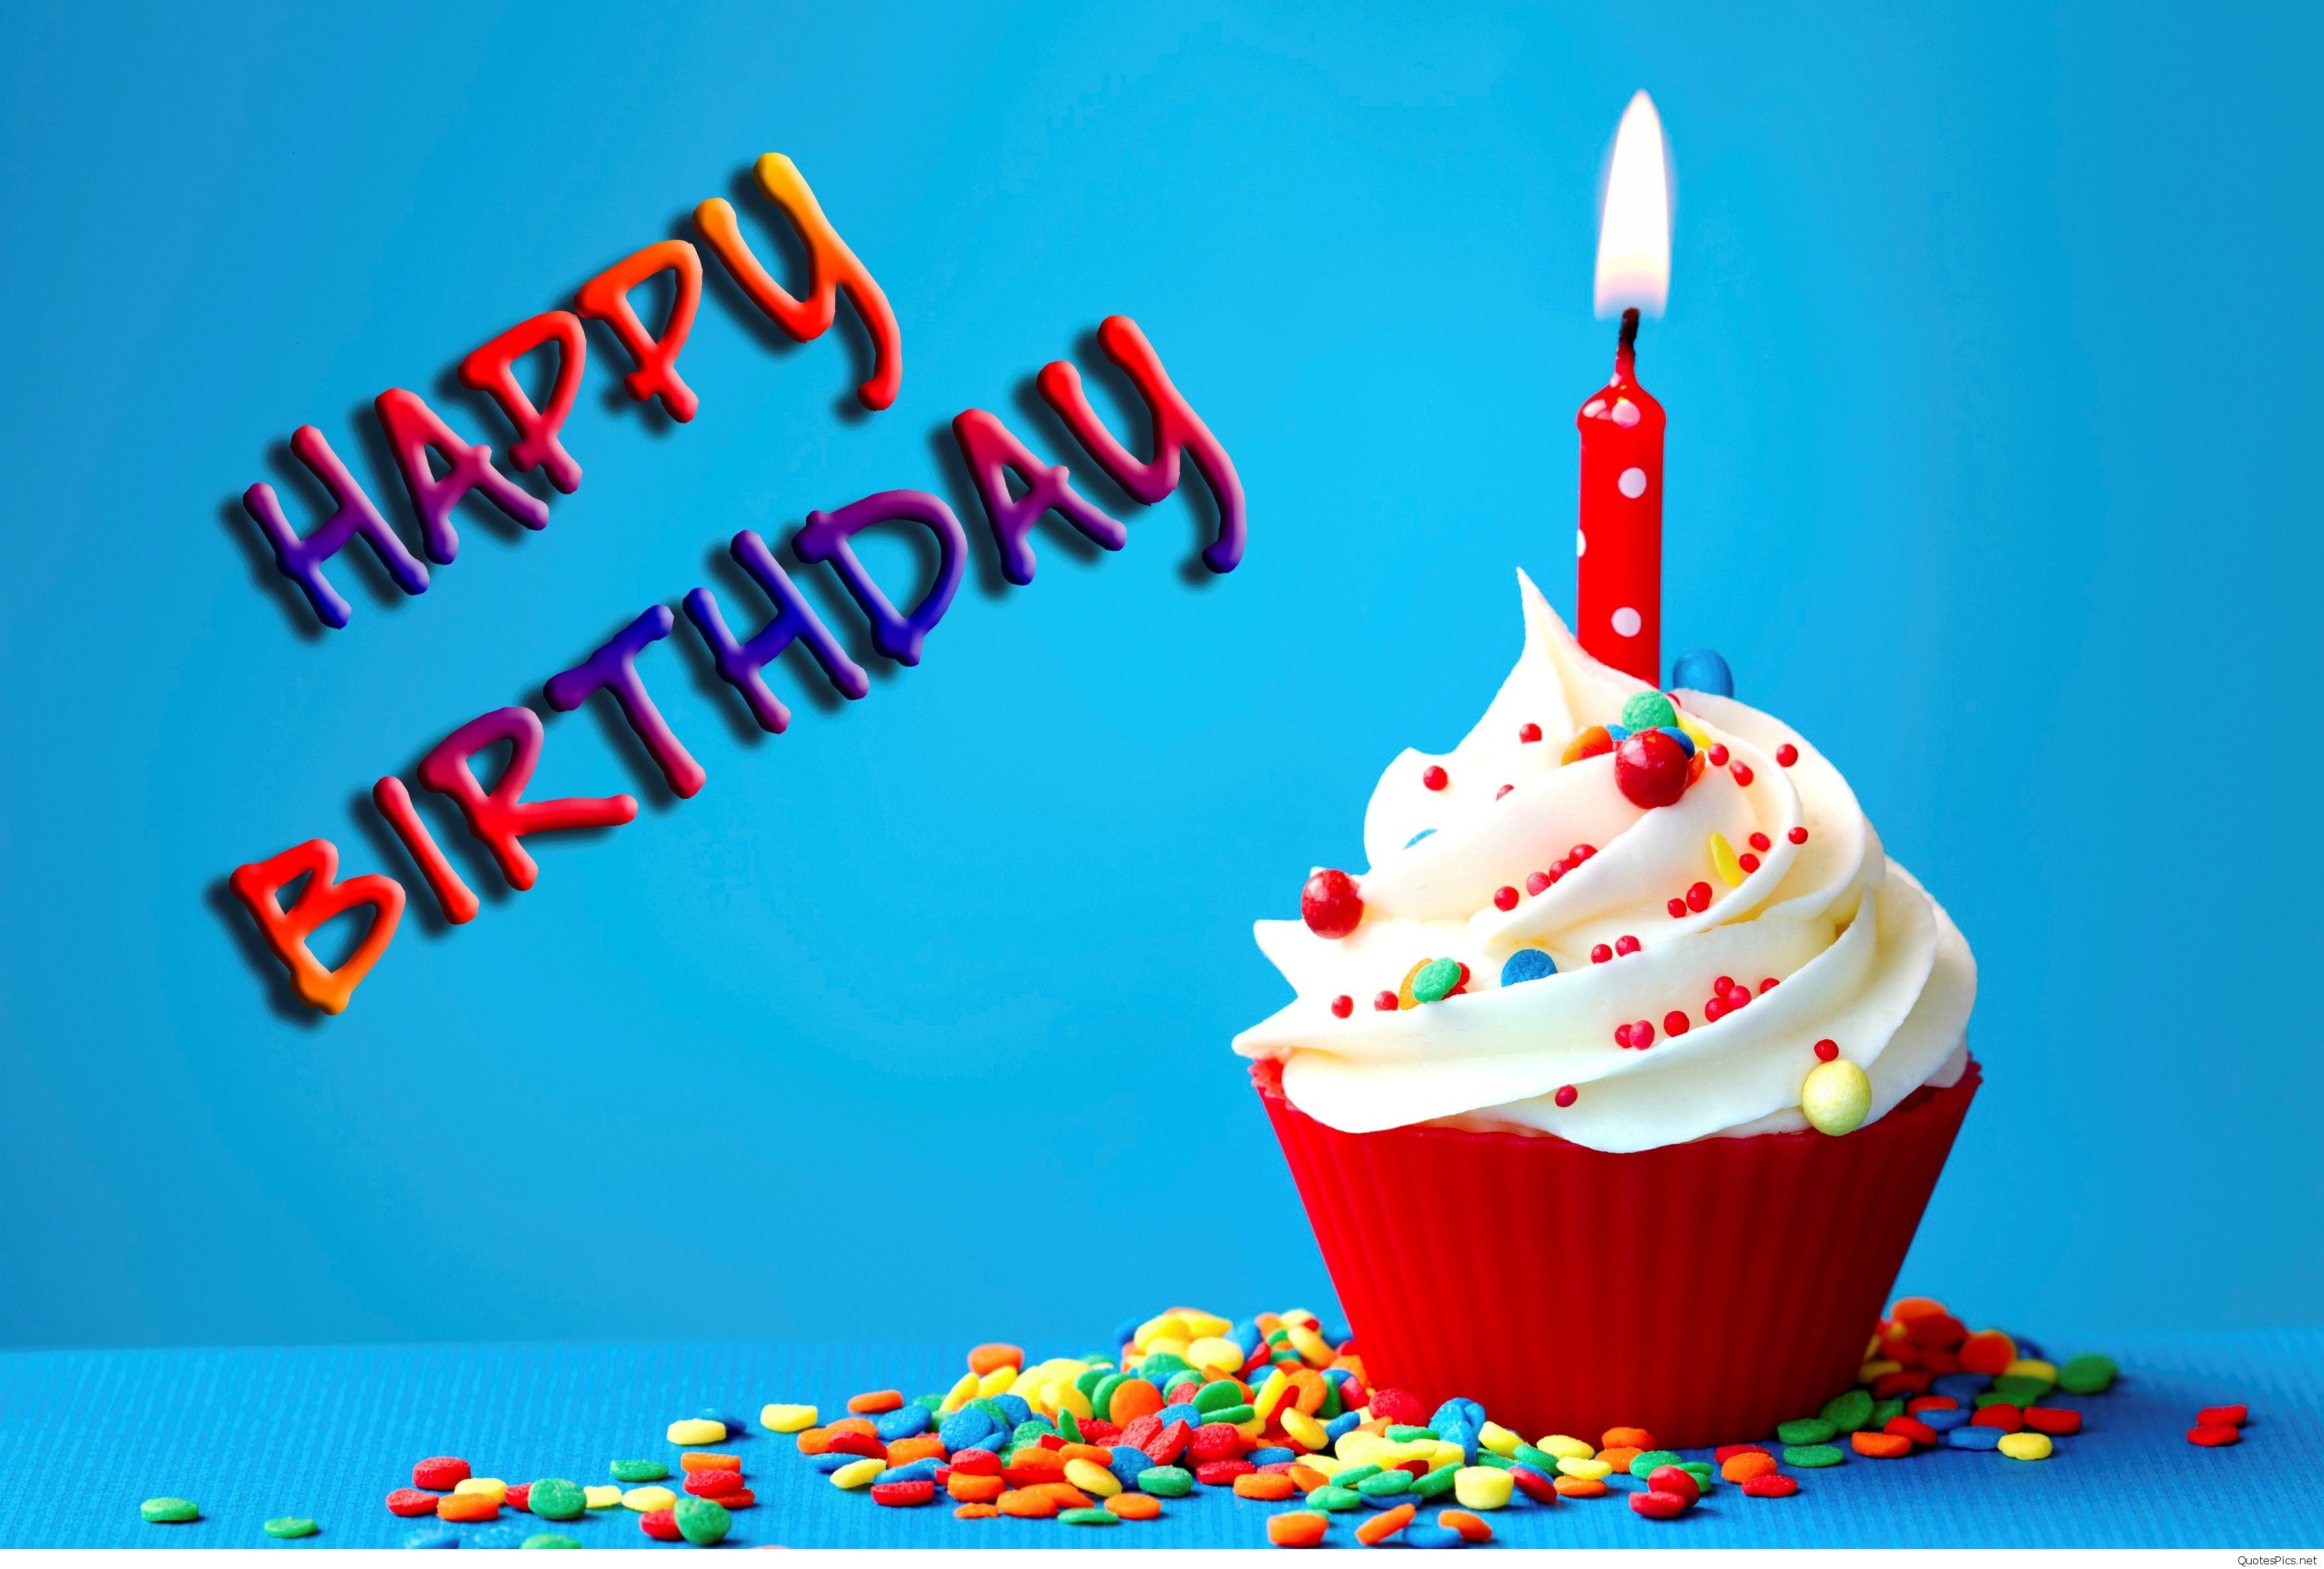 birthday wishes in hd images ; Amazing_Birthday_Wish_with_Cake_and_Candle_Wallpaper